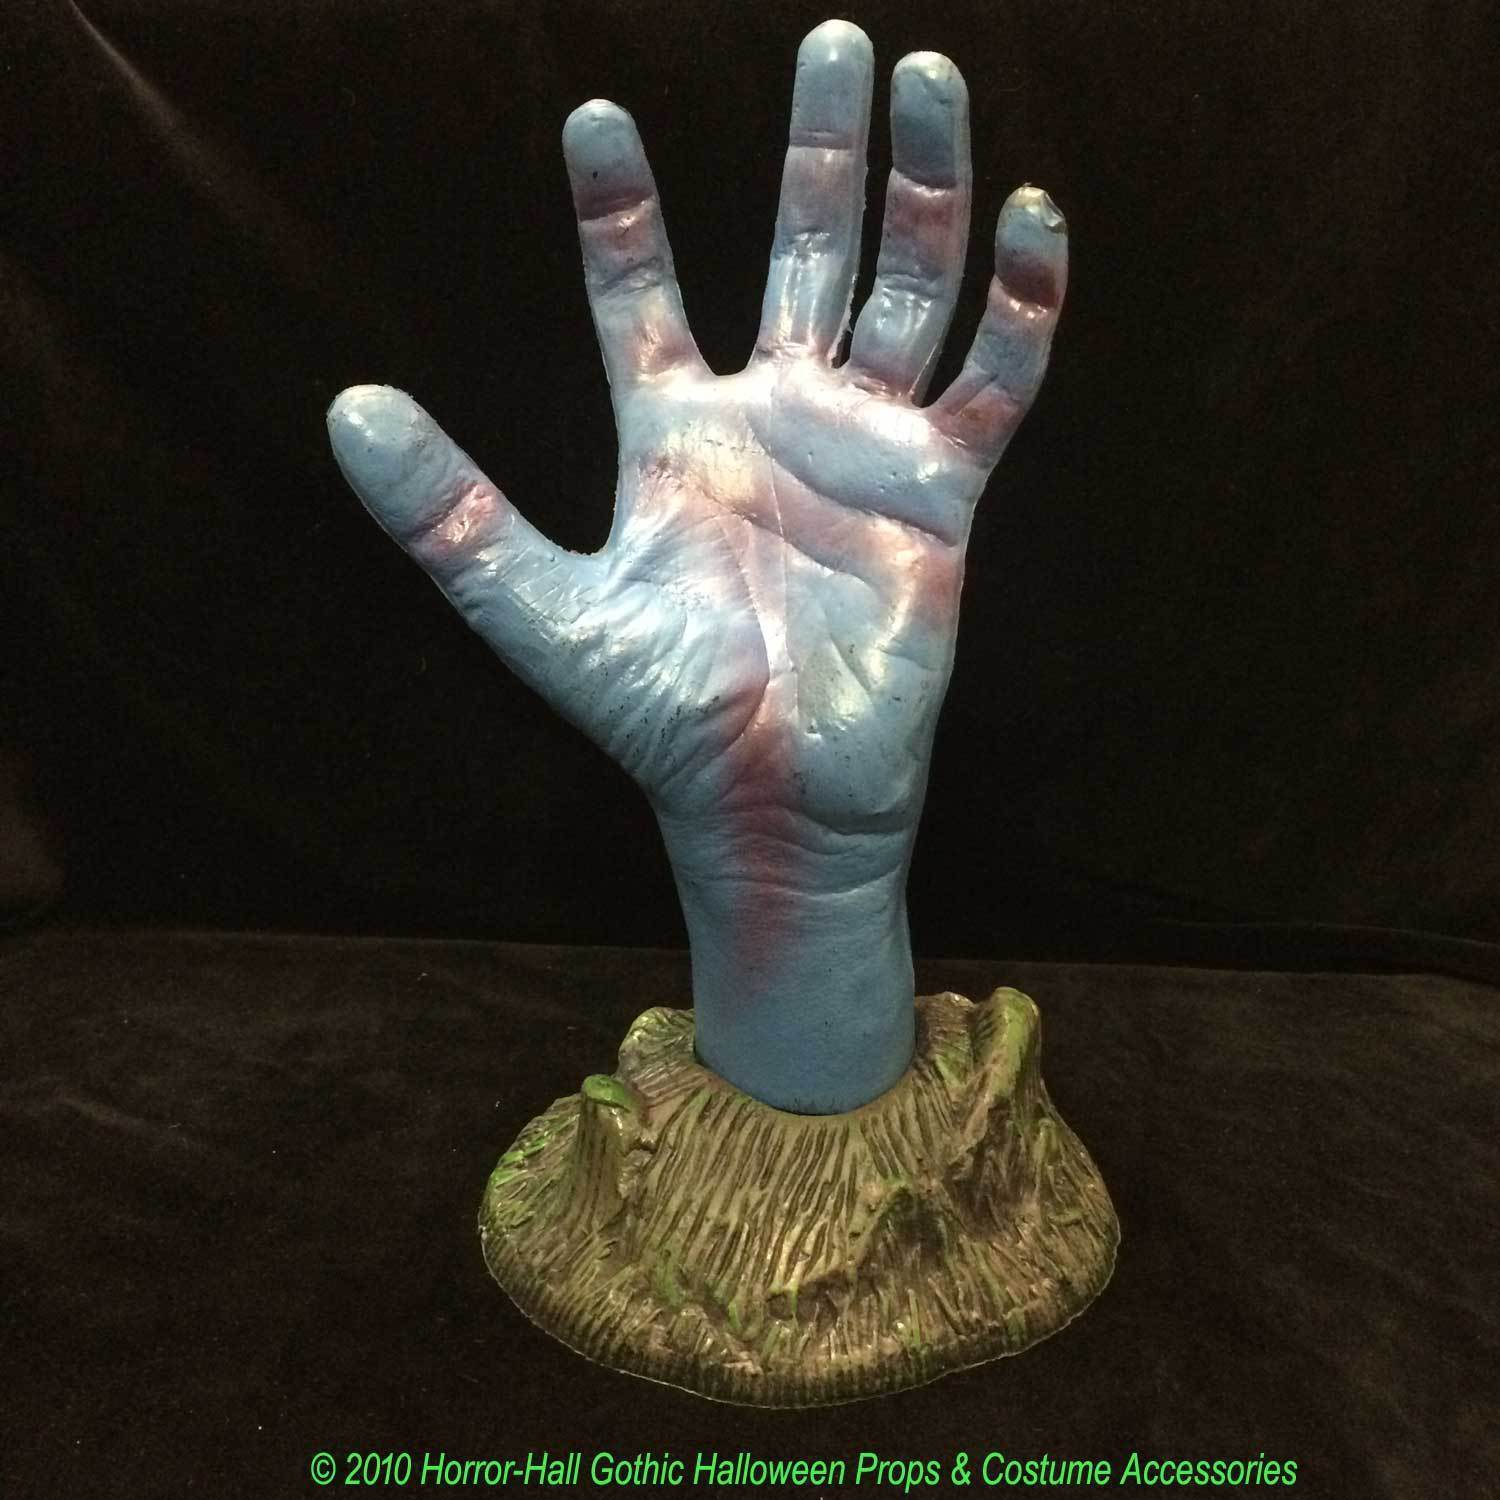 Life Size SEVERED ZOMBIE HAND Halloween Ghoul Groundbreaker Prop Yard Decoration